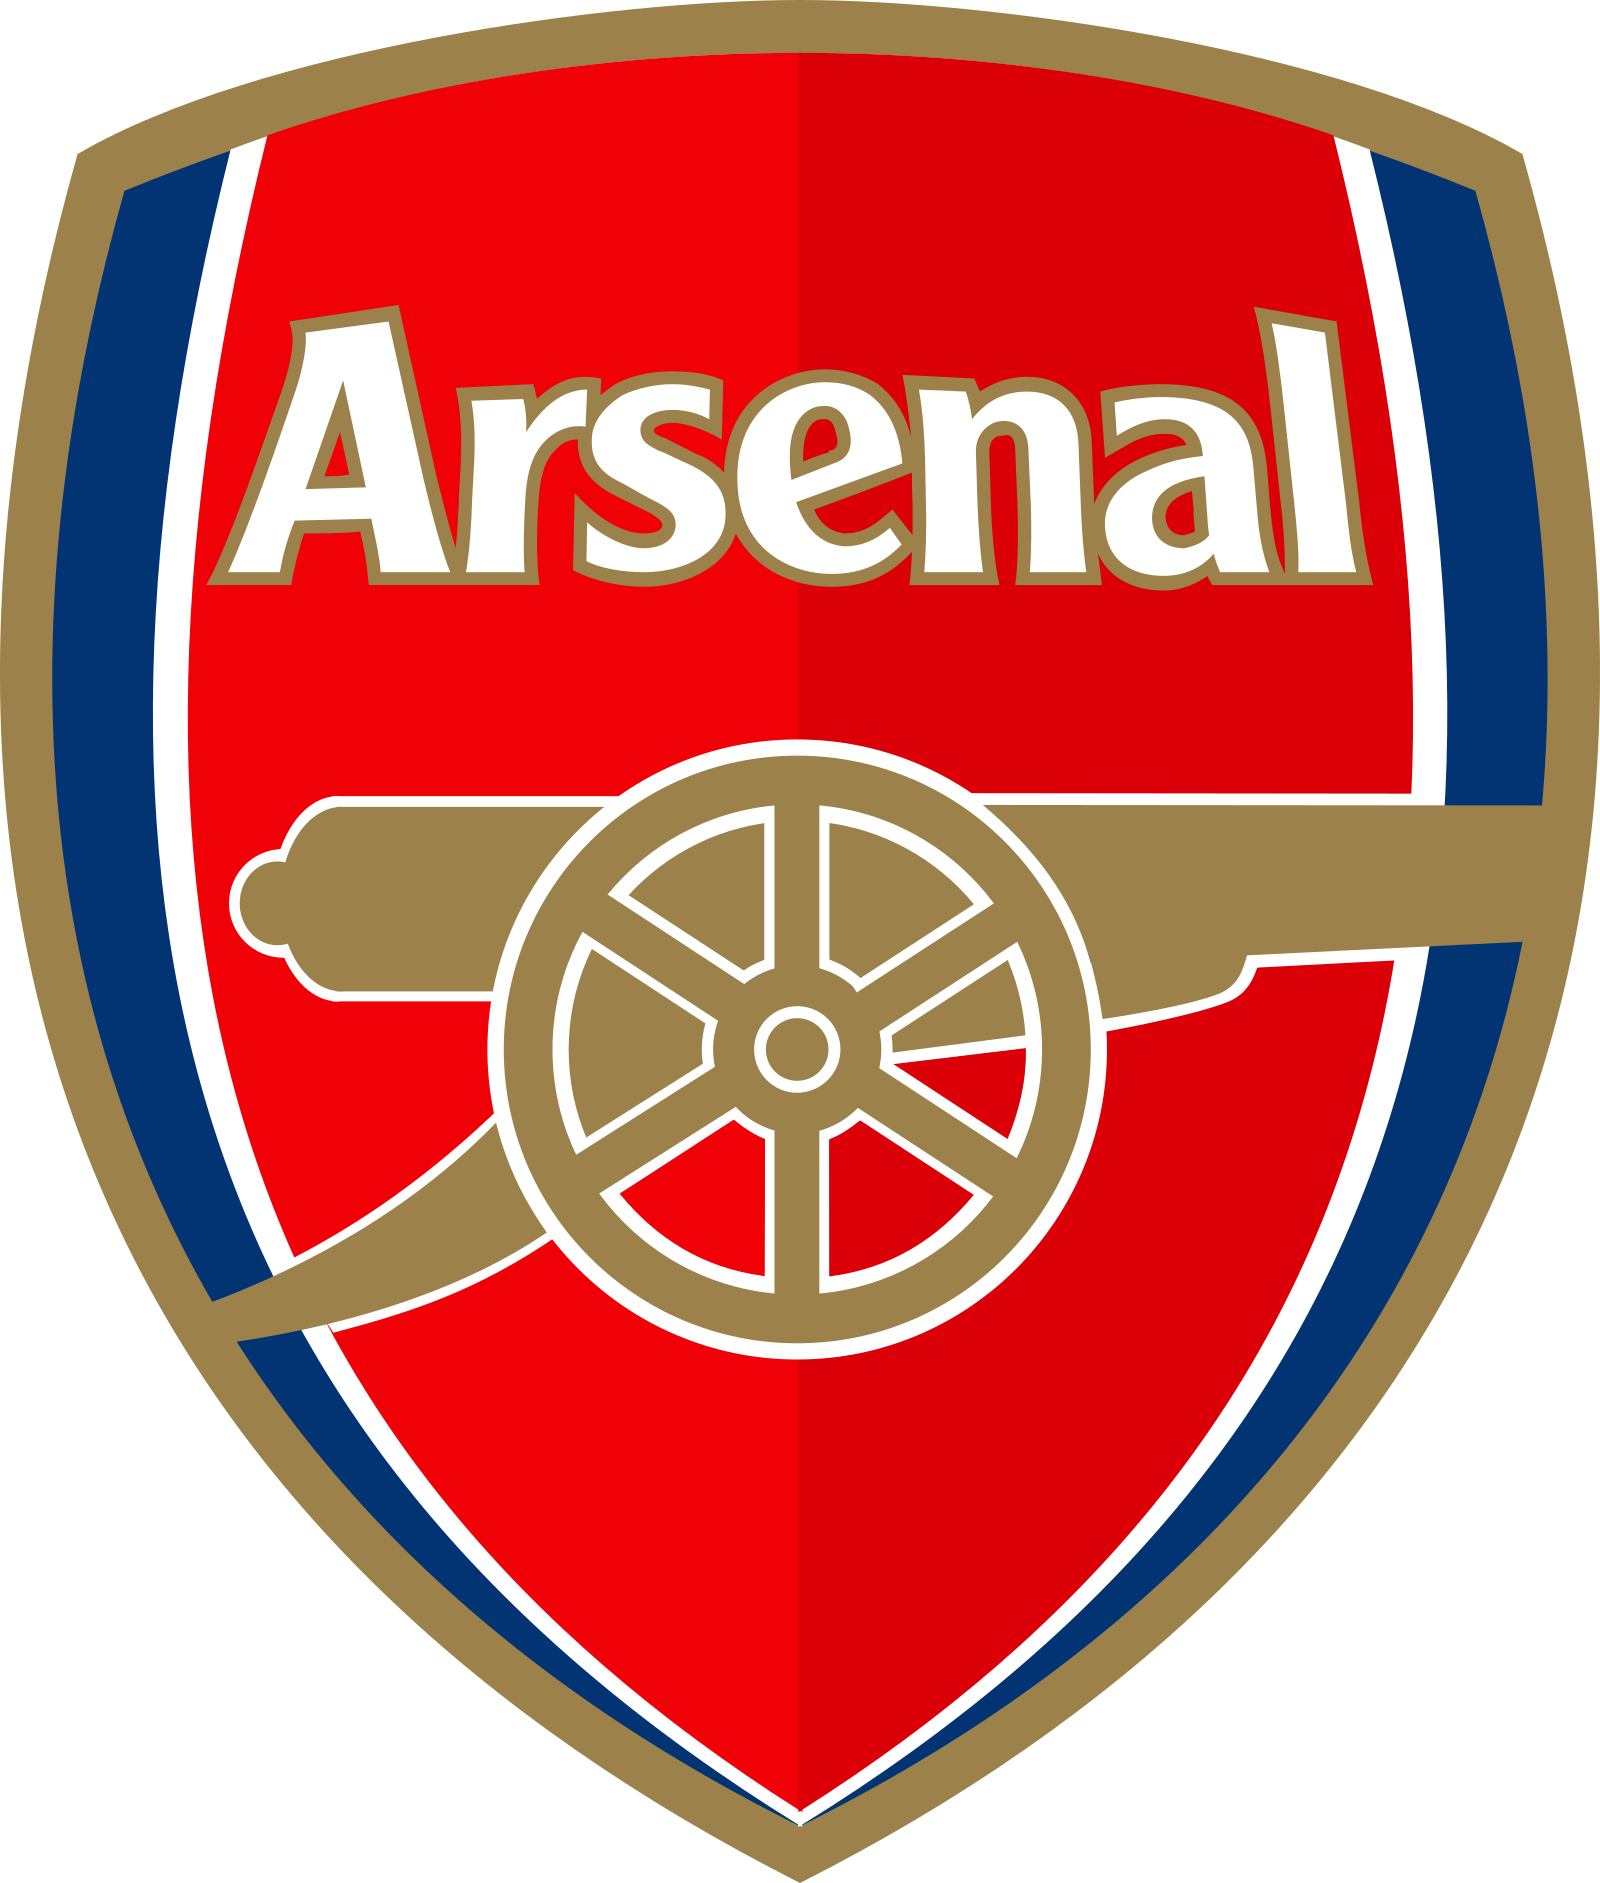 Arsenal logo escudo shield 2 - Arsenal F.C Logo